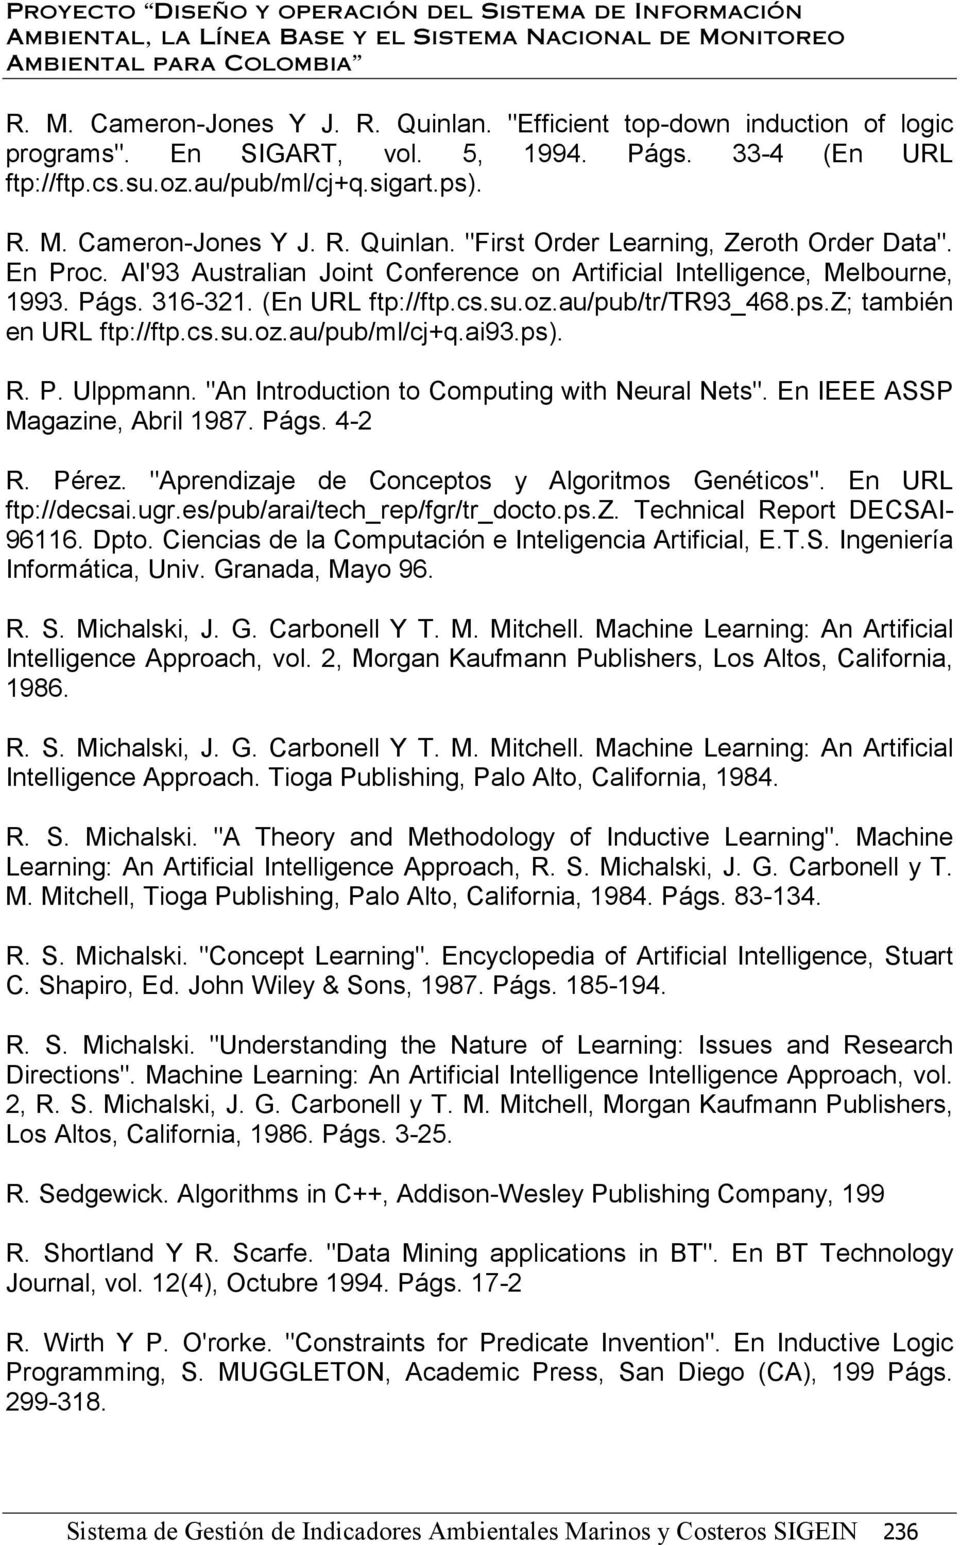 "ai93.ps). R. P. Ulppmann. ""An Introduction to Computing with Neural Nets"". En IEEE ASSP Magazine, Abril 1987. Págs. 4-2 R. Pérez. ""Aprendizaje de Conceptos y Algoritmos Genéticos""."